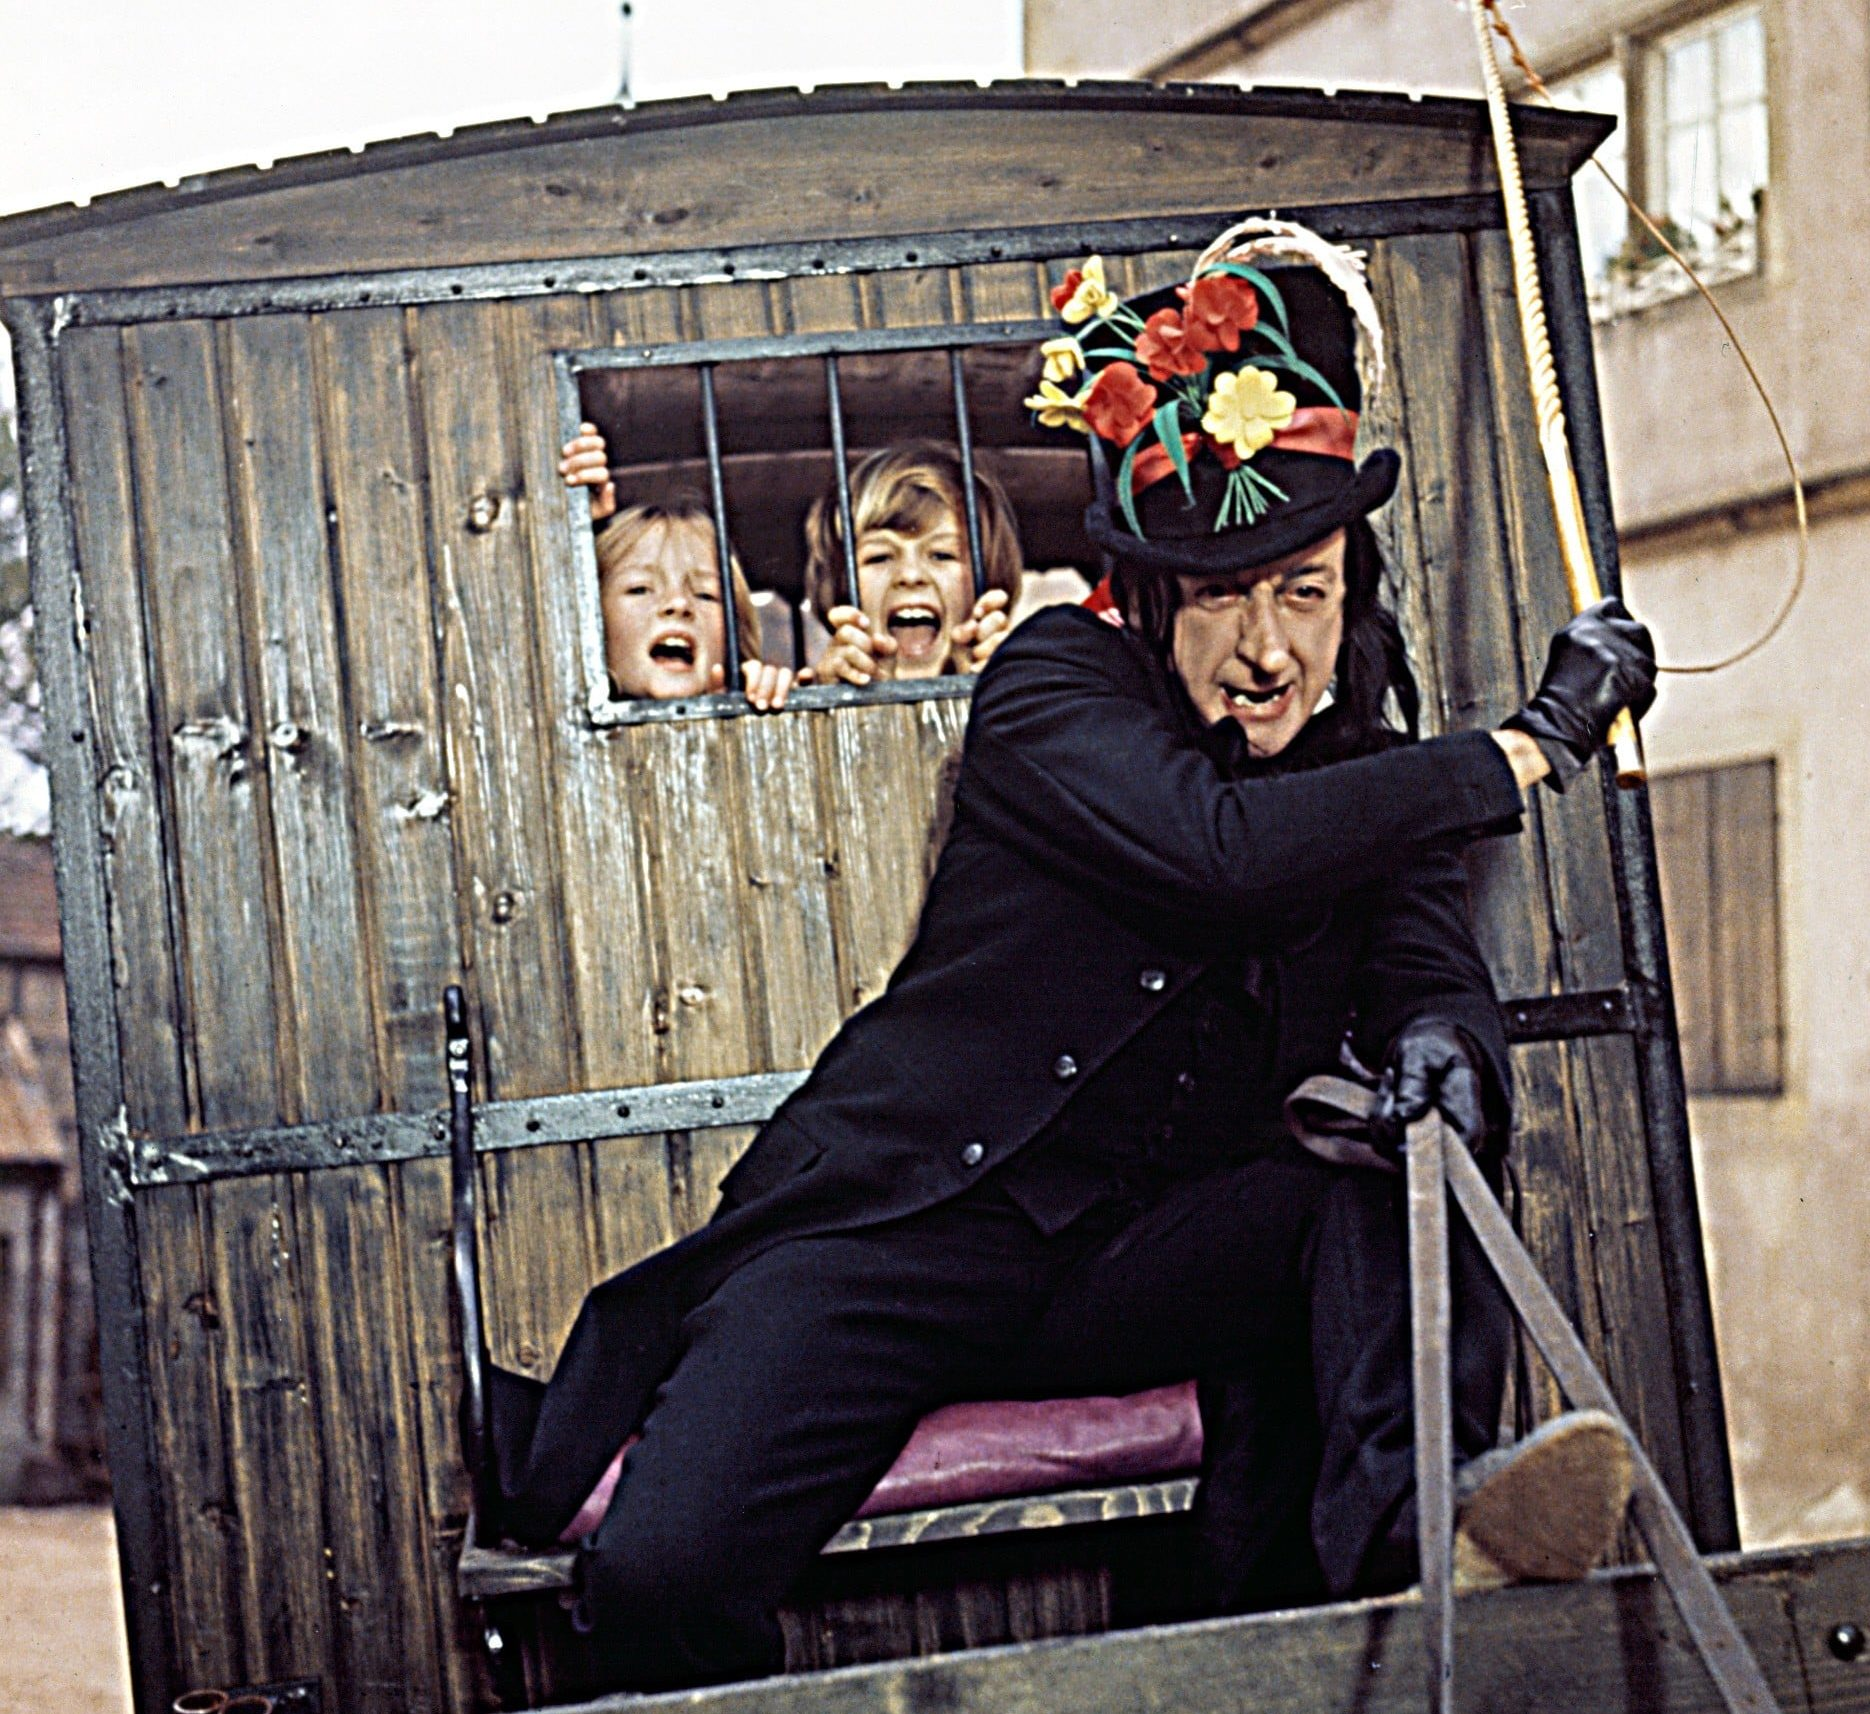 Child Catcher From Chitty Chitty Bang Bang 2 e1606308917630 25 Movies We Should NEVER Have Been Allowed To Watch As Kids